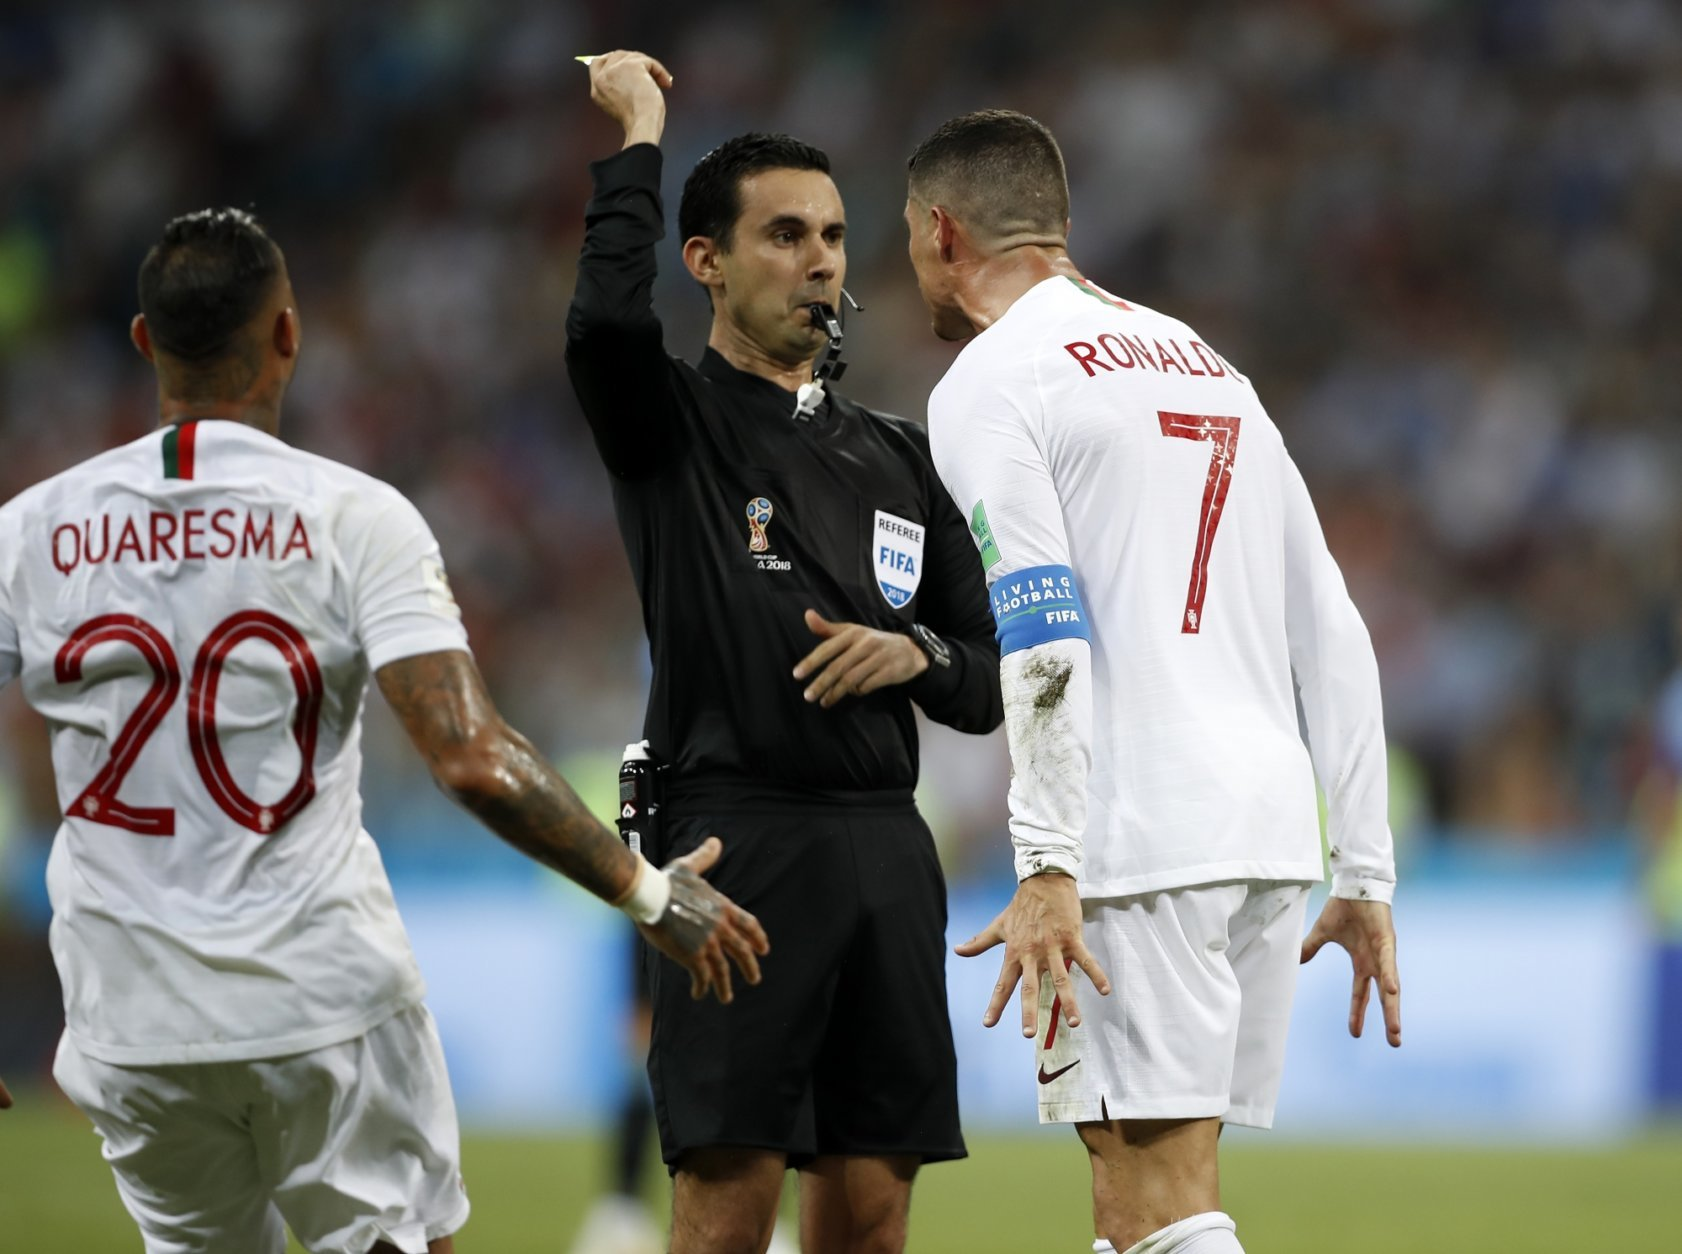 Portugal's Cristiano Ronaldo reacts angry to referee Cesar Ramos during the round of 16 match between Uruguay and Portugal at the 2018 soccer World Cup at the Fisht Stadium in Sochi, Russia, Saturday, June 30, 2018. (AP Photo/Francisco Seco)